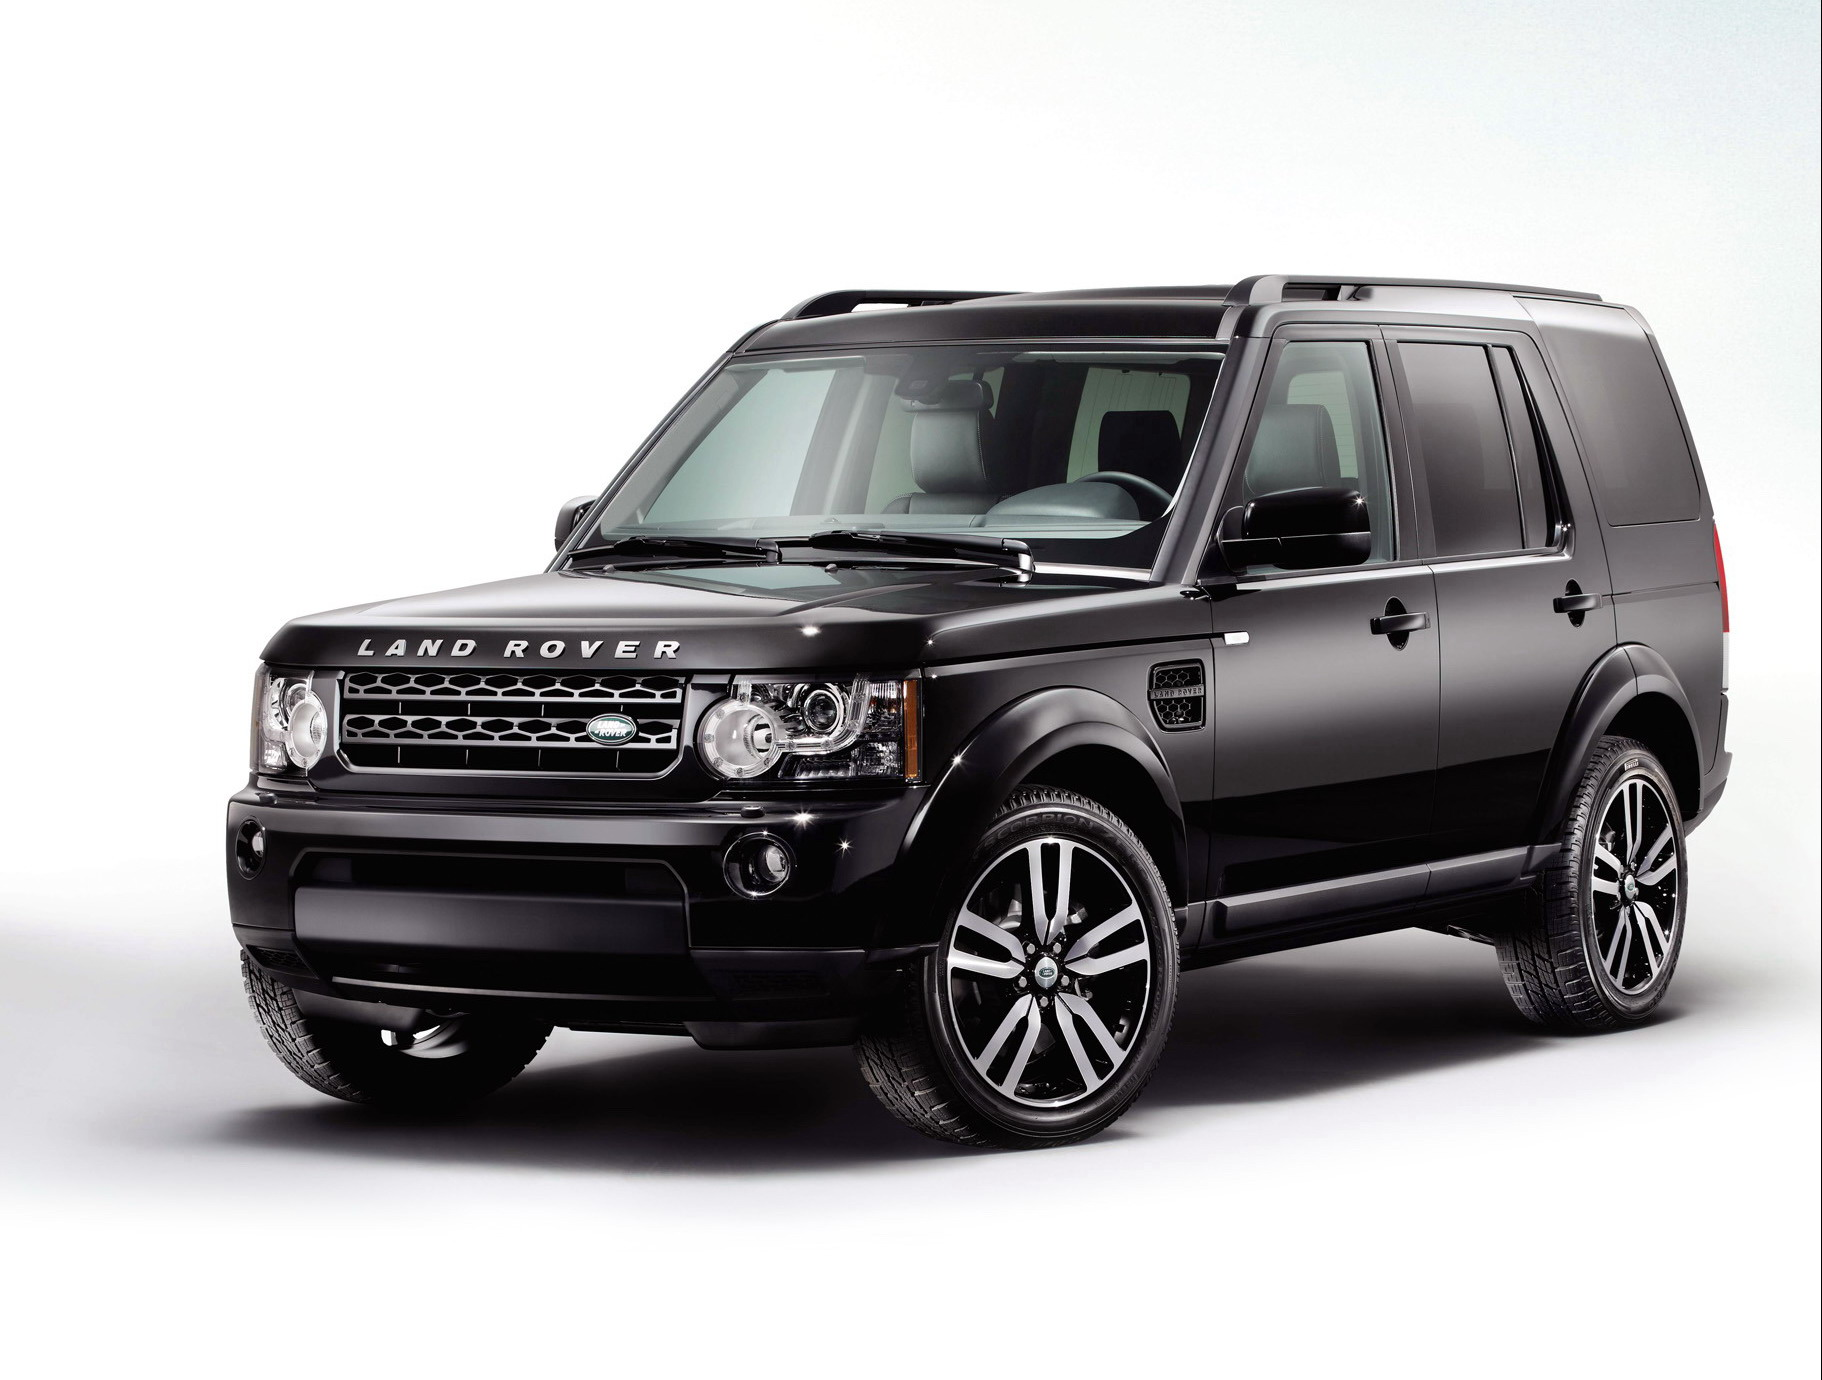 2011 Land Rover Discovery 4 Landmark Limited Editions Review Top